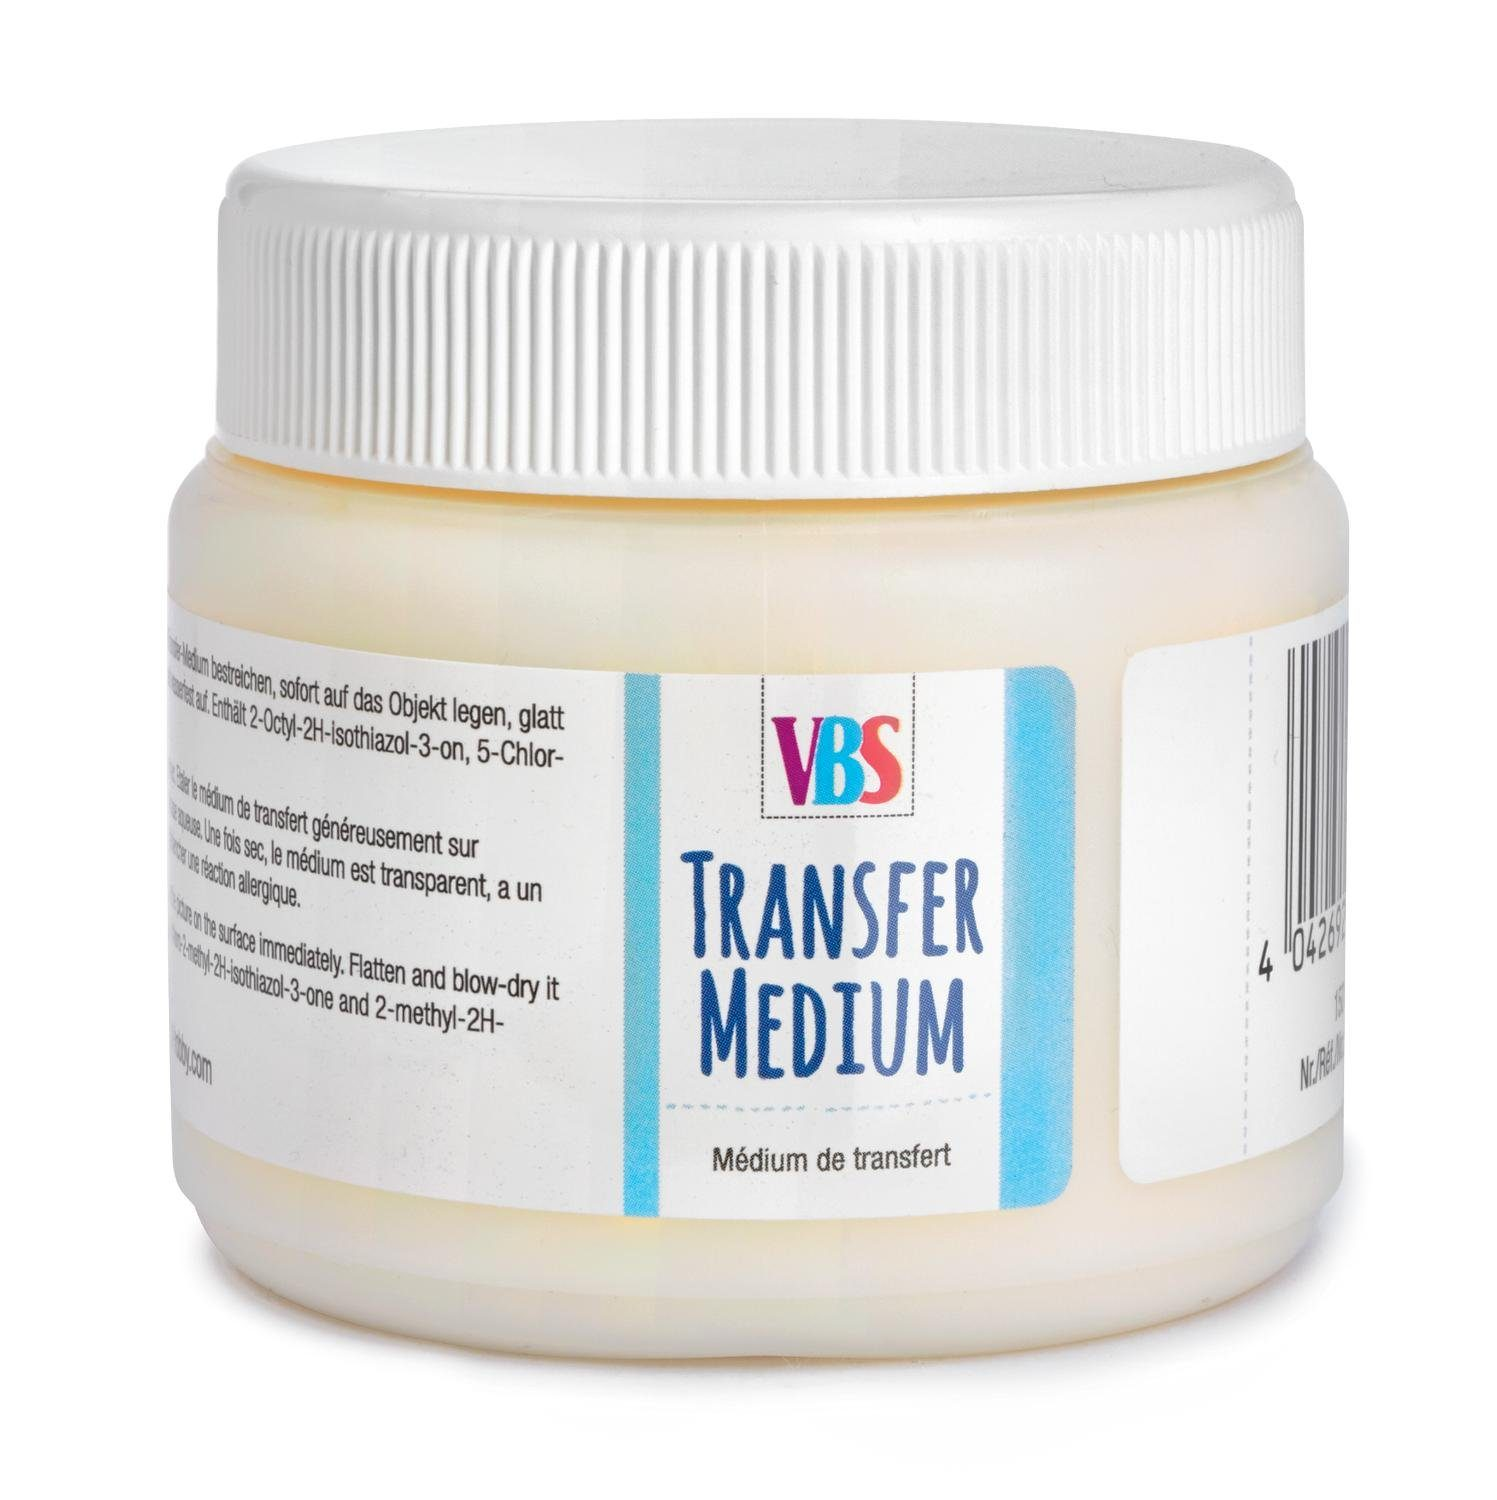 VBS Transfer Medium, 150ml